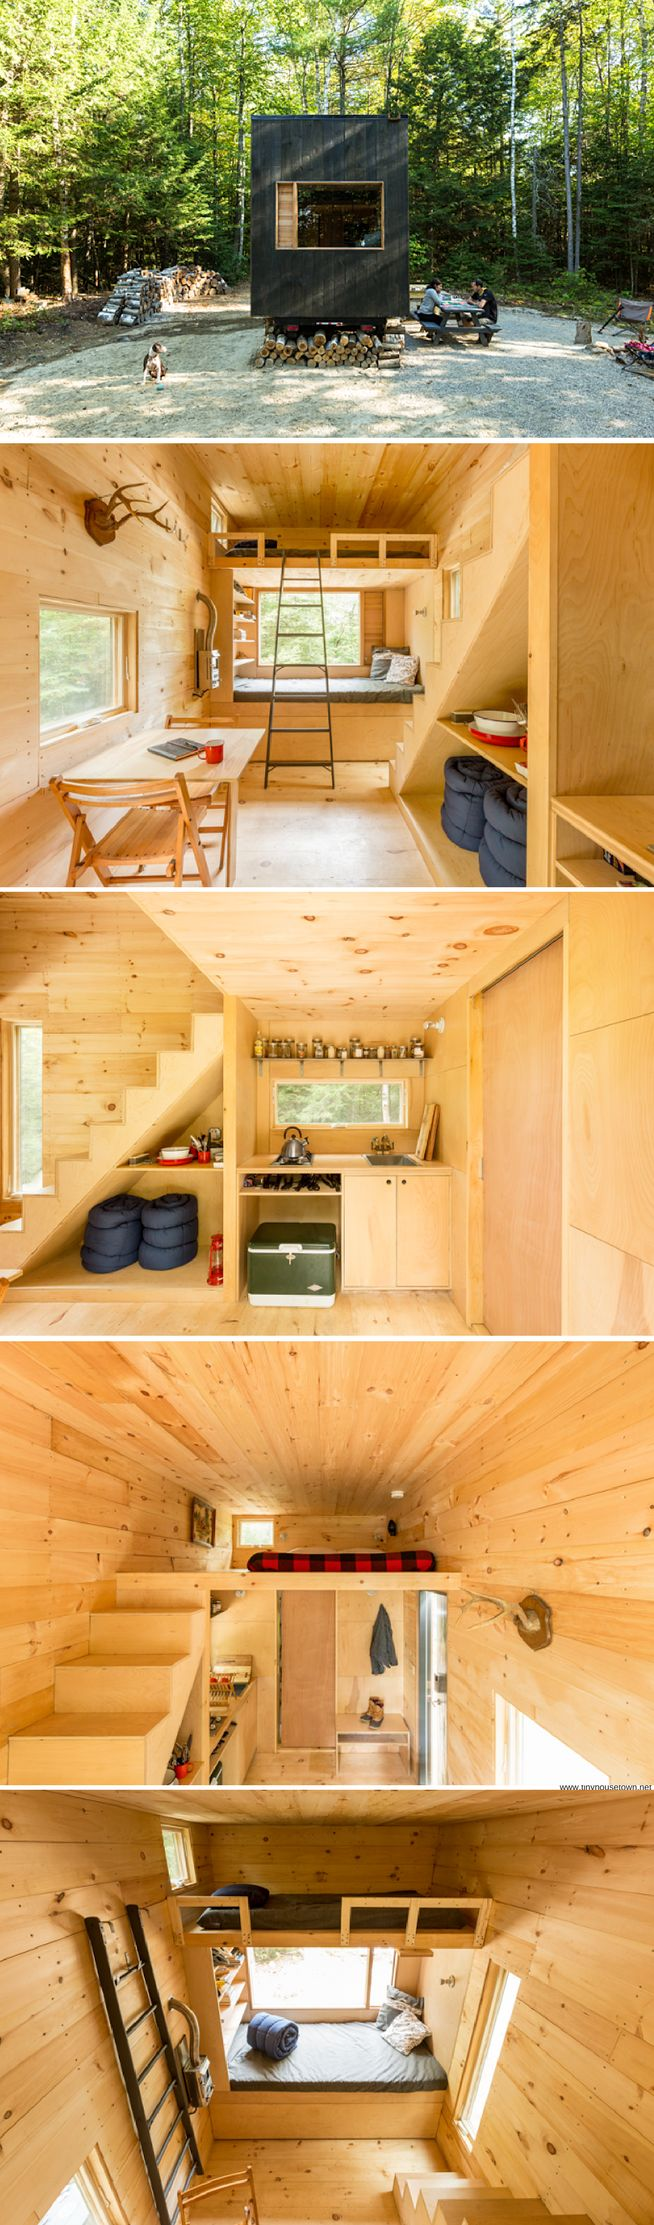 Best 25 Microhouse ideas on Pinterest Micro homes Micro house